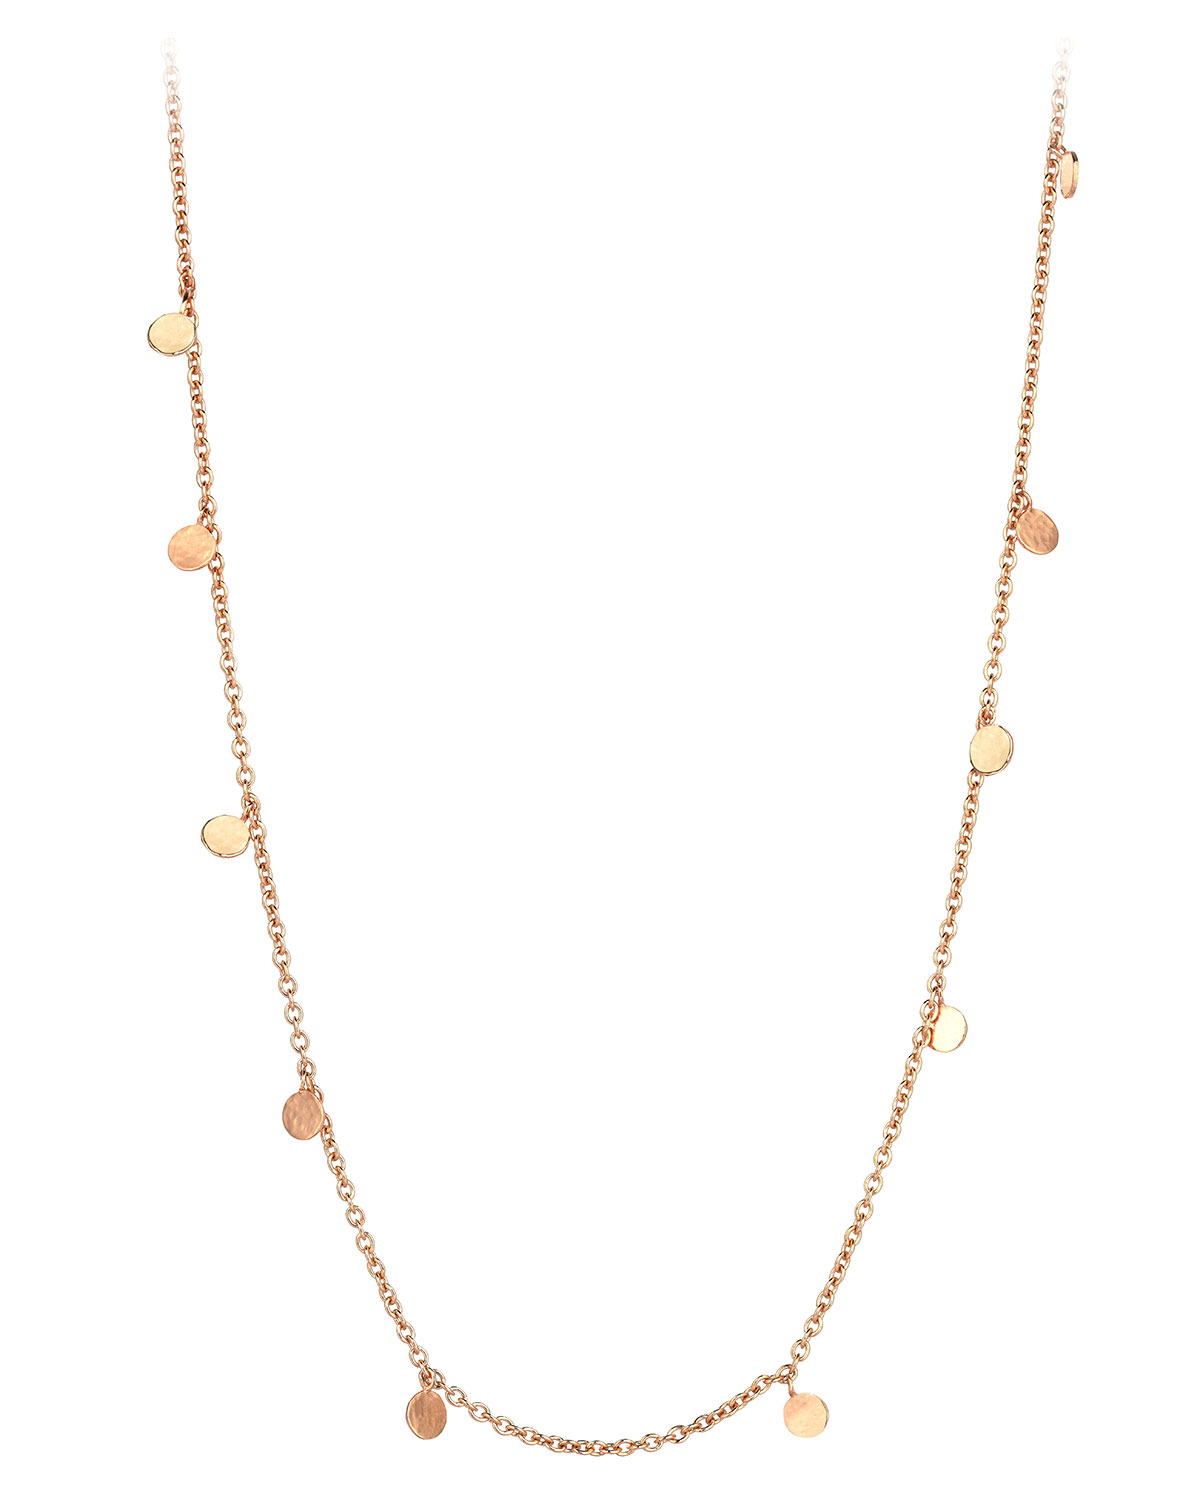 KISMET BY MILKA SEED SCATTERED DANGLING CIRCLE NECKLACE IN 14K ROSE GOLD